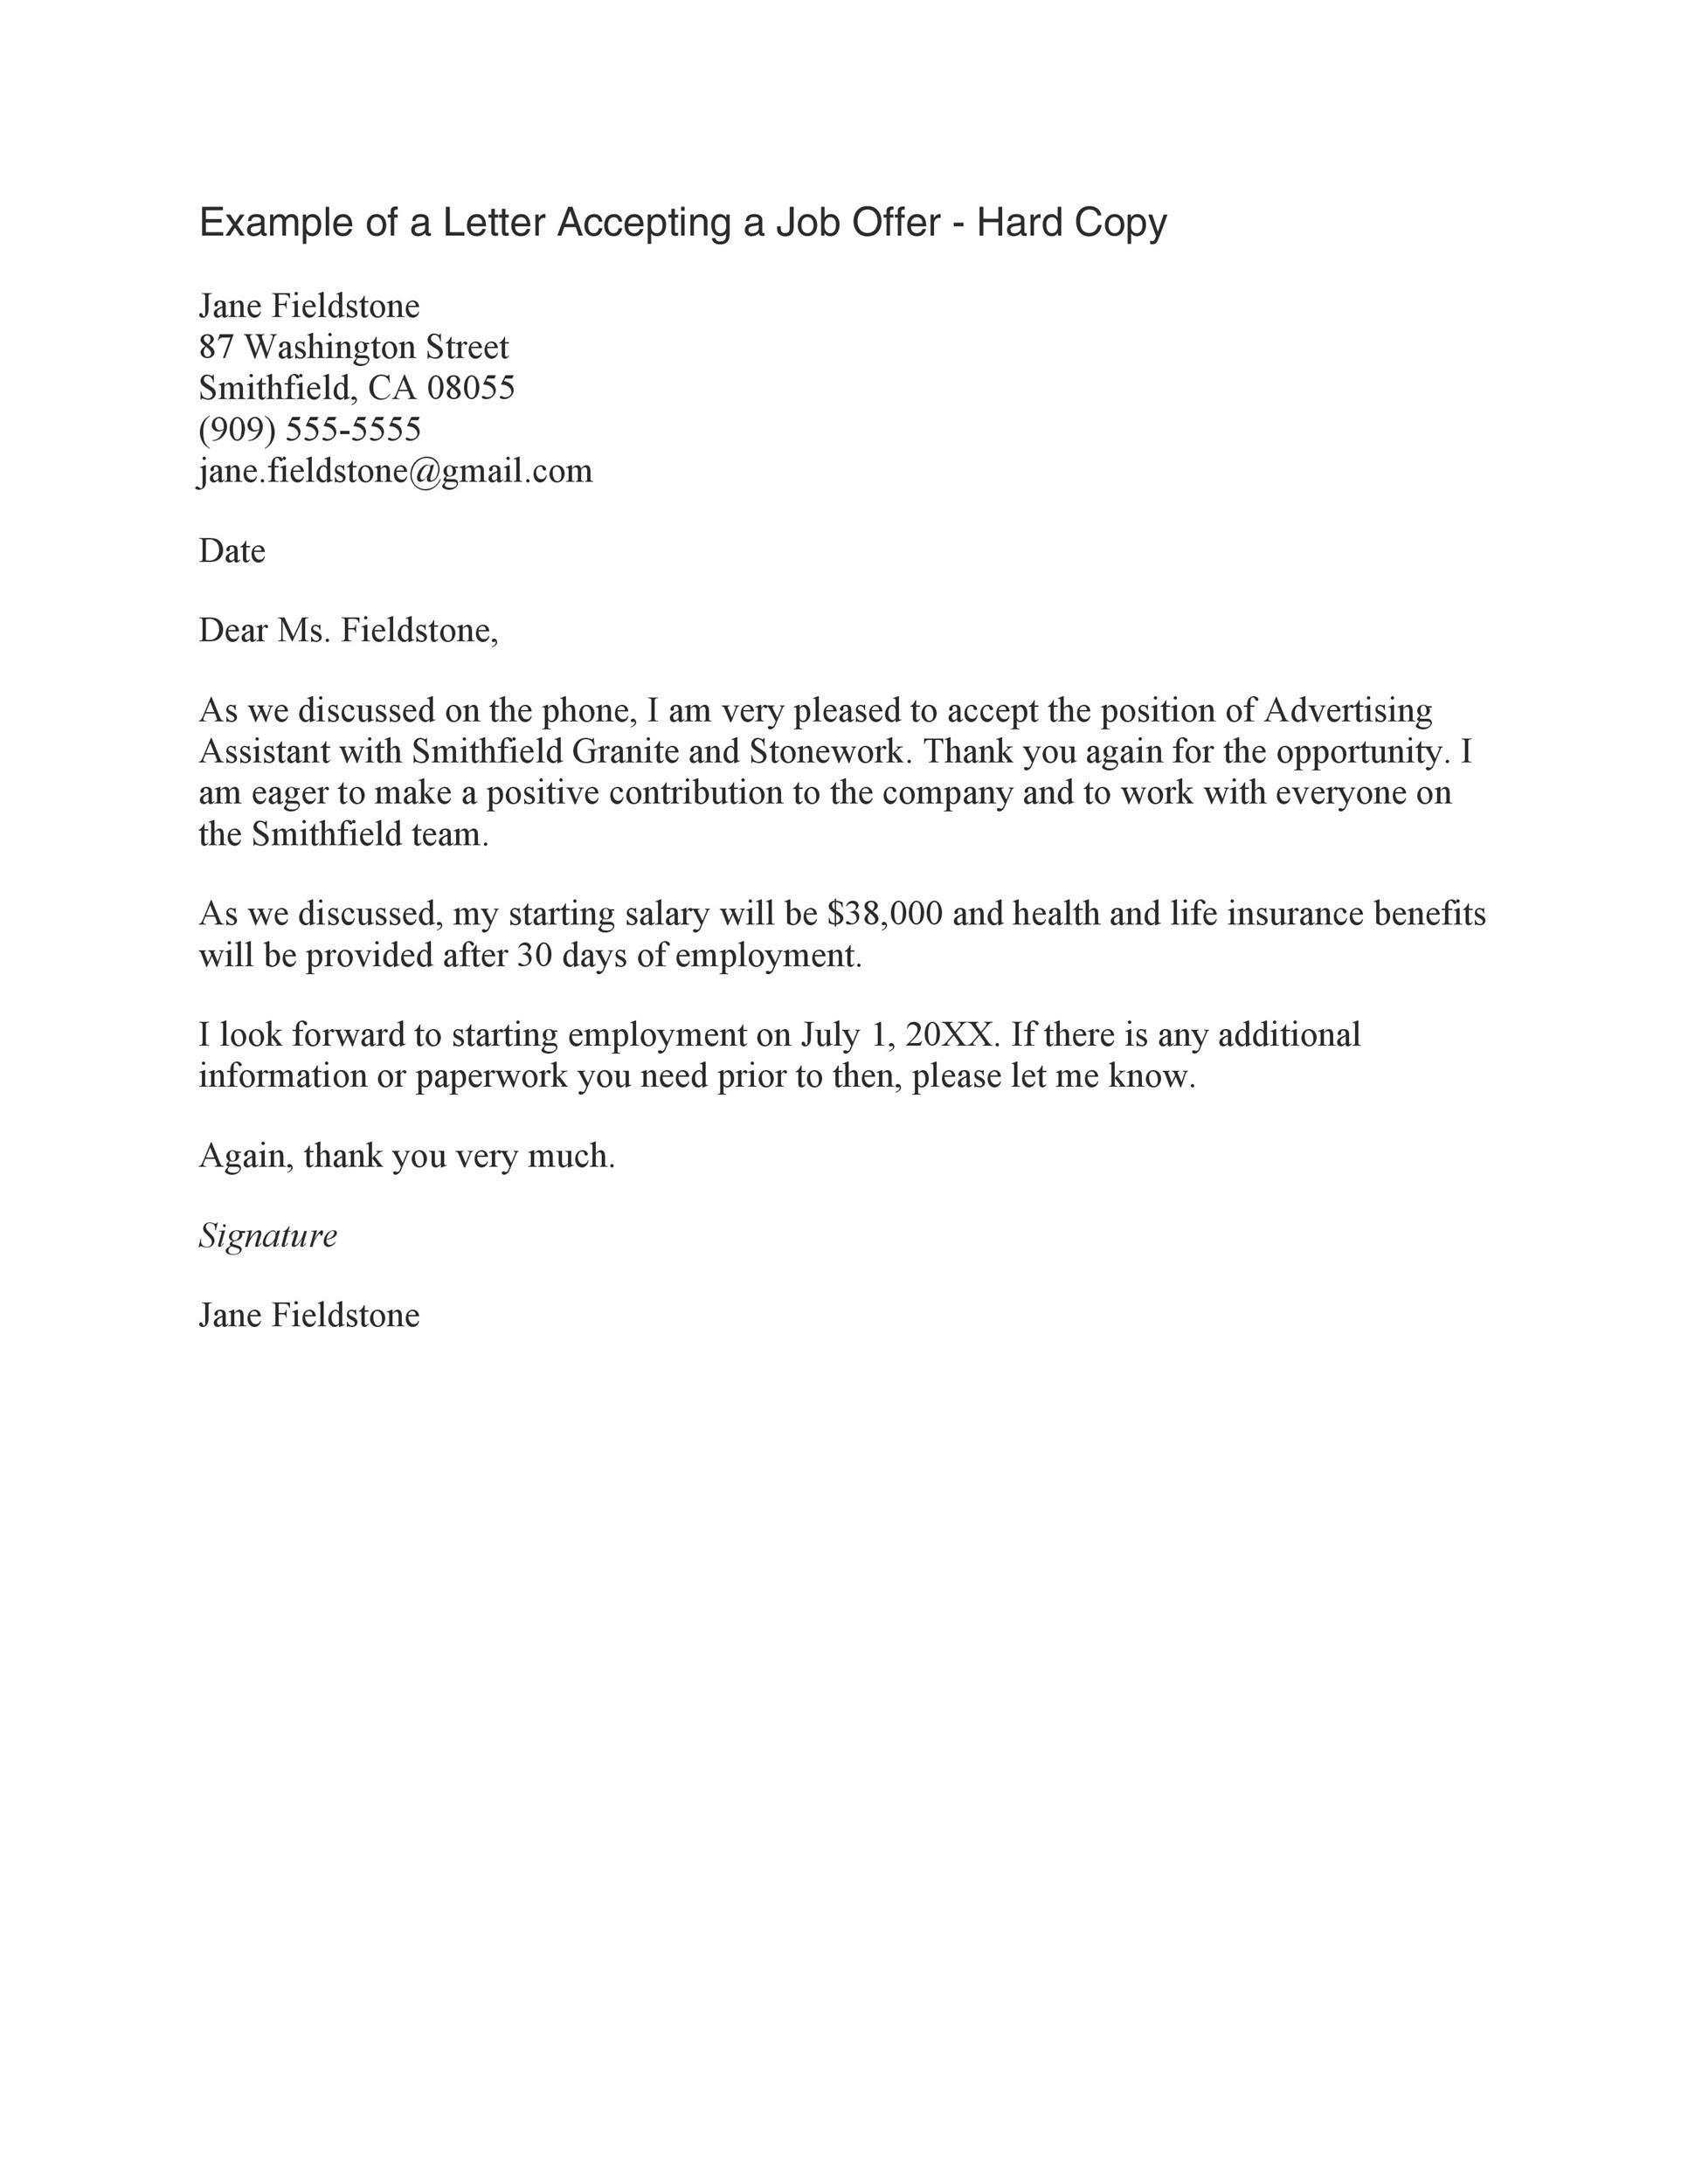 Employee Offer Letter Template from templatelab.com